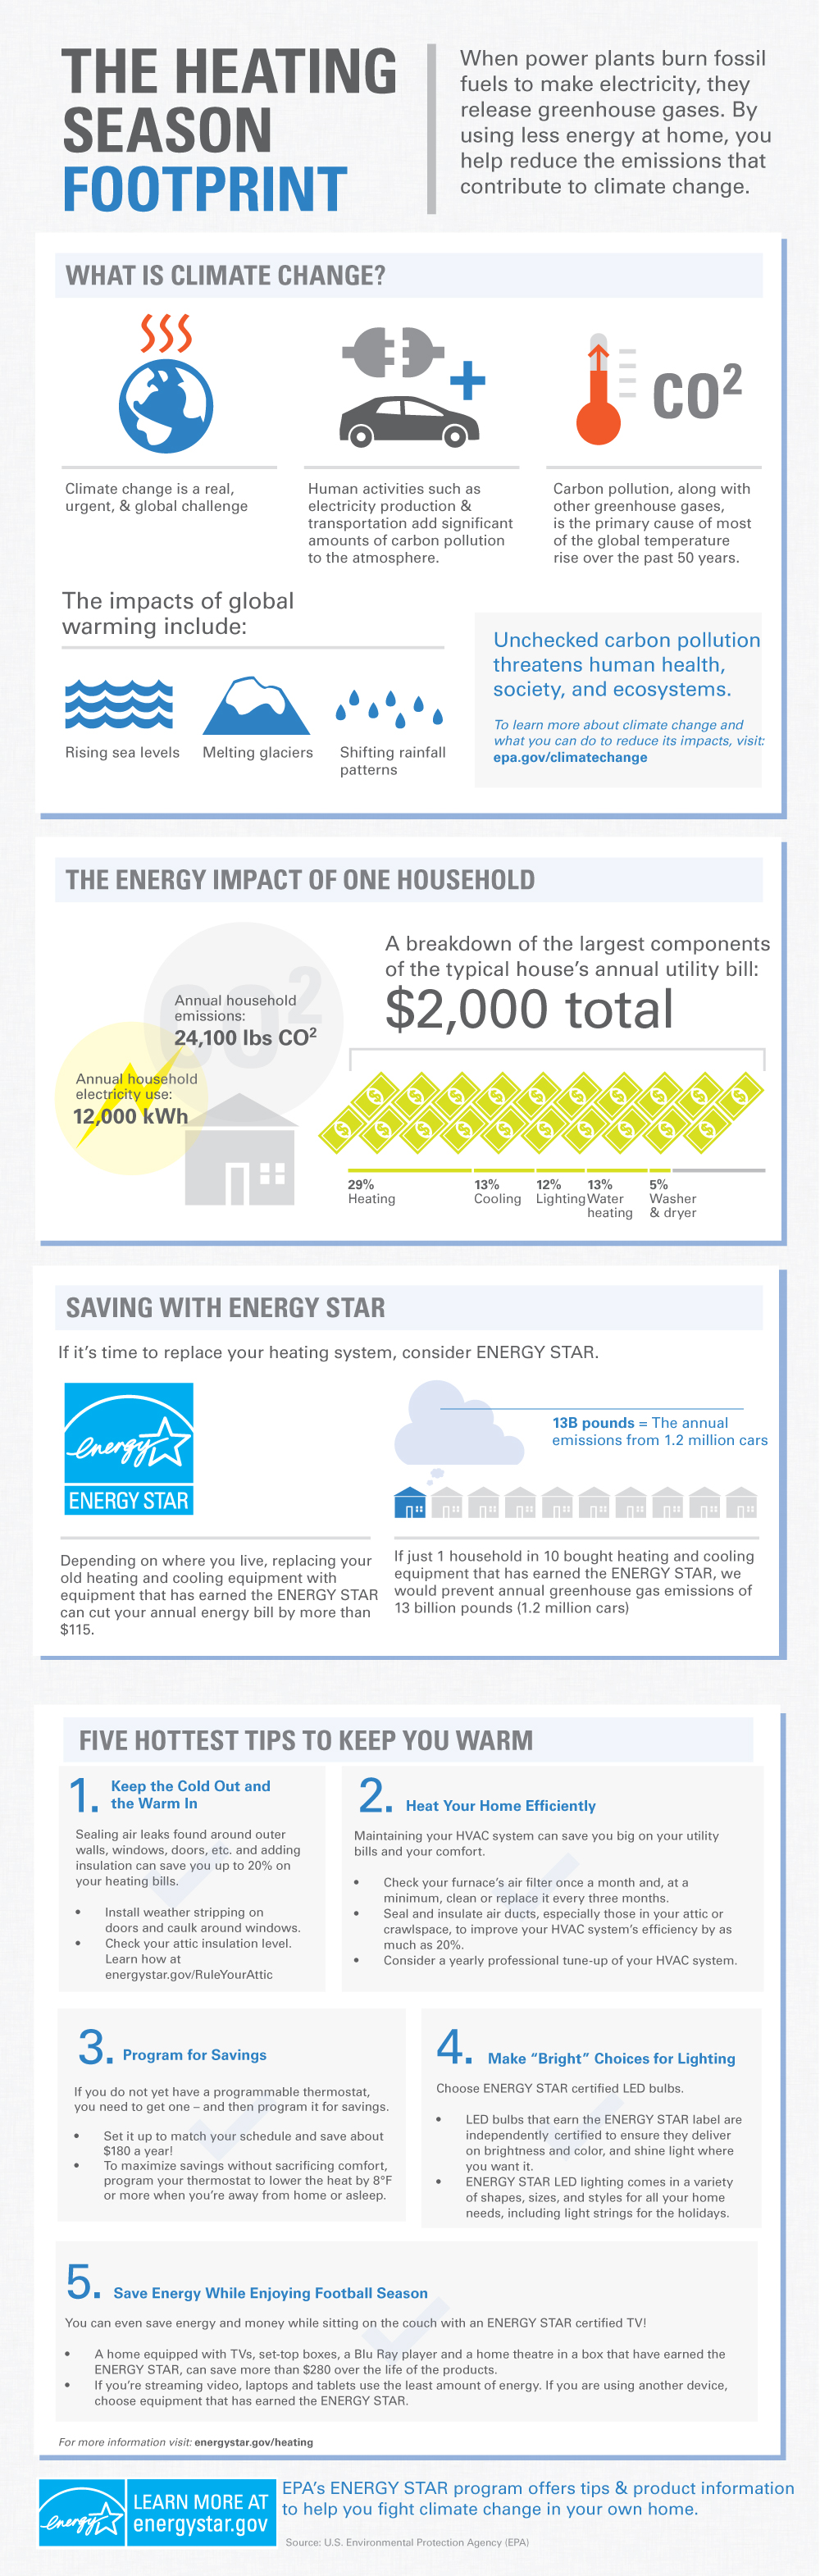 Heating Homes This Winter - New ENERGY STAR Infographic Breaks Down Data